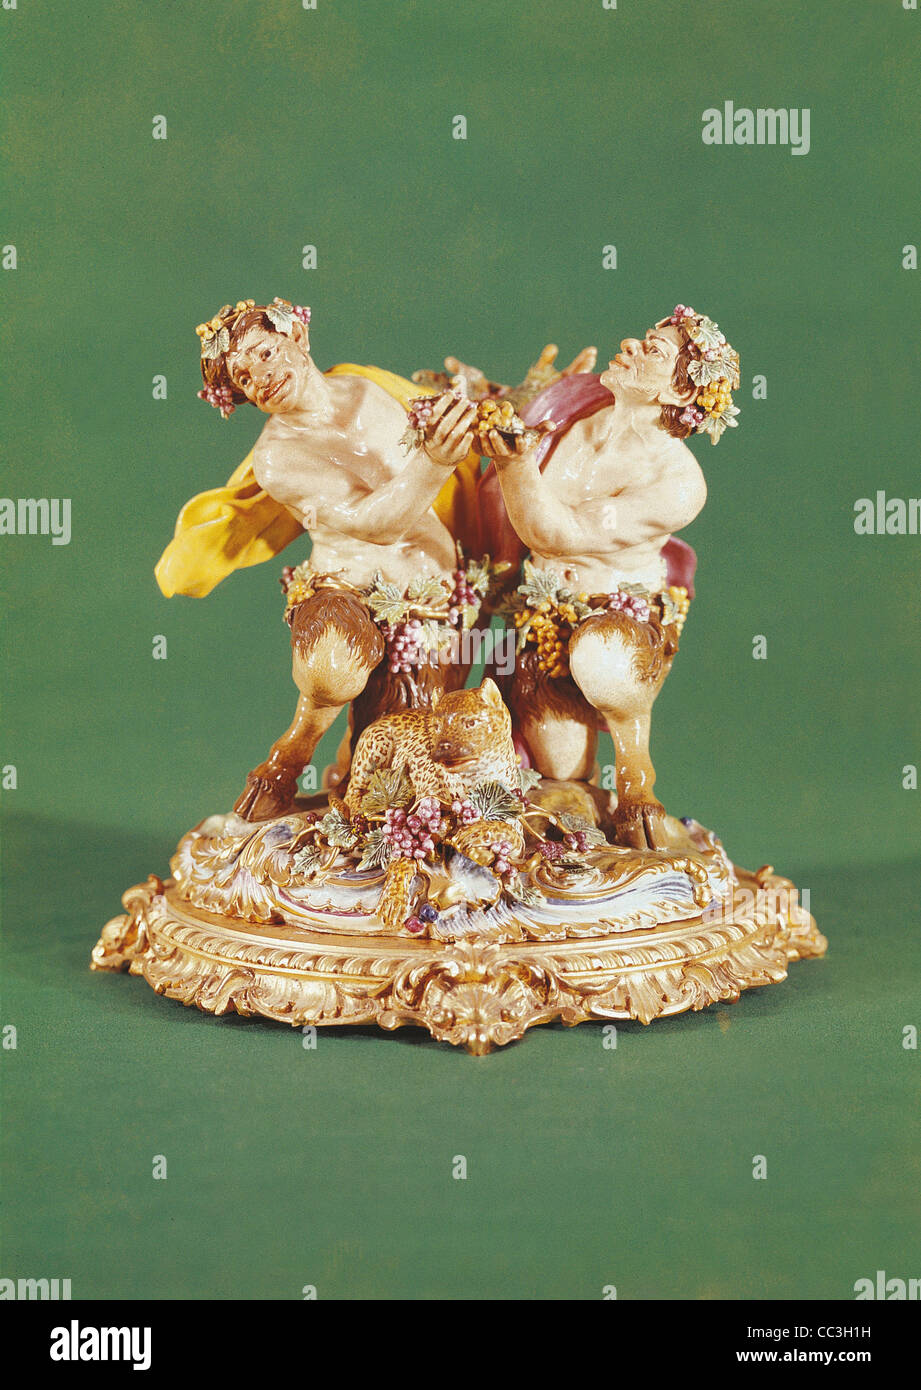 Ceramics, Italy, Nineteenth Century. anufacture Of Capodimonte. Vintage Charles III. Drunken Satyrs. - Stock Image